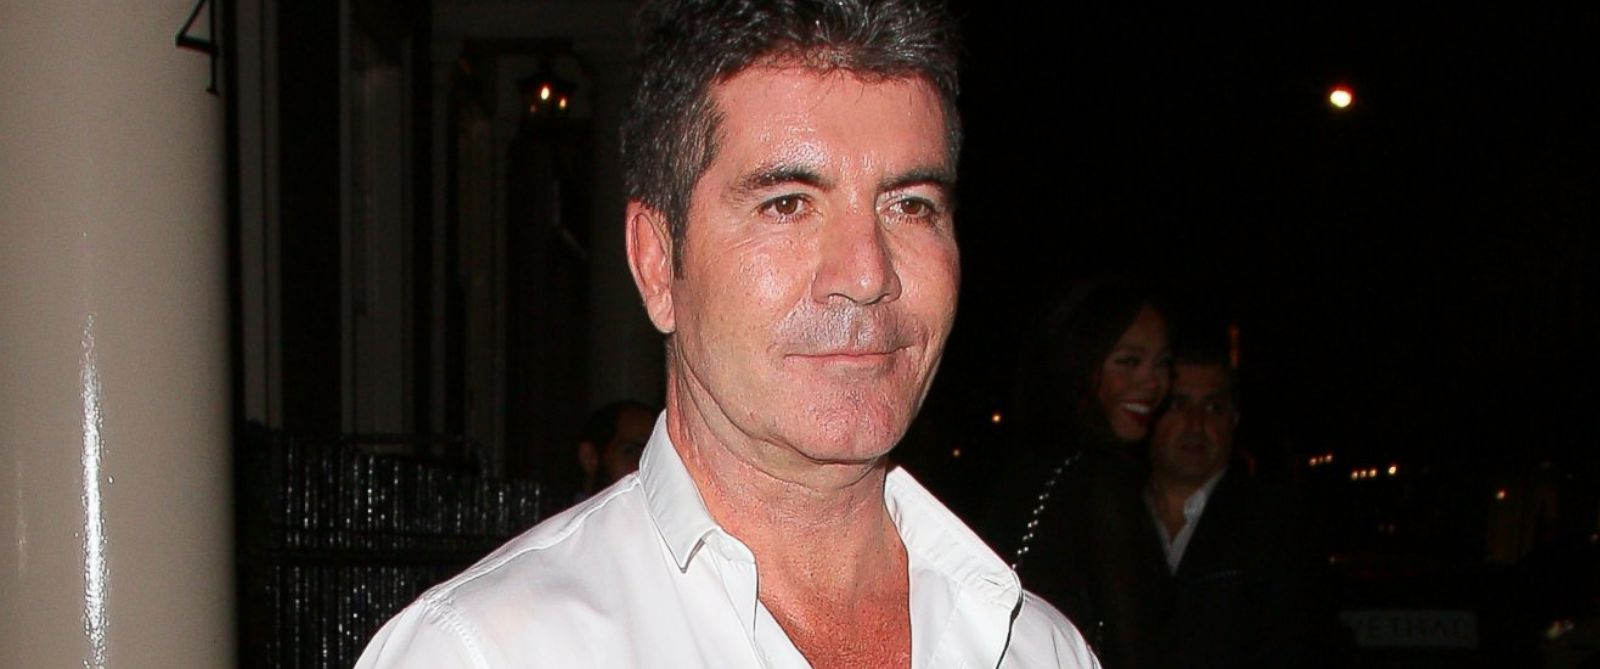 PHOTO: Simon Cowell at the Arts club, April 5, 2014 in London, England.